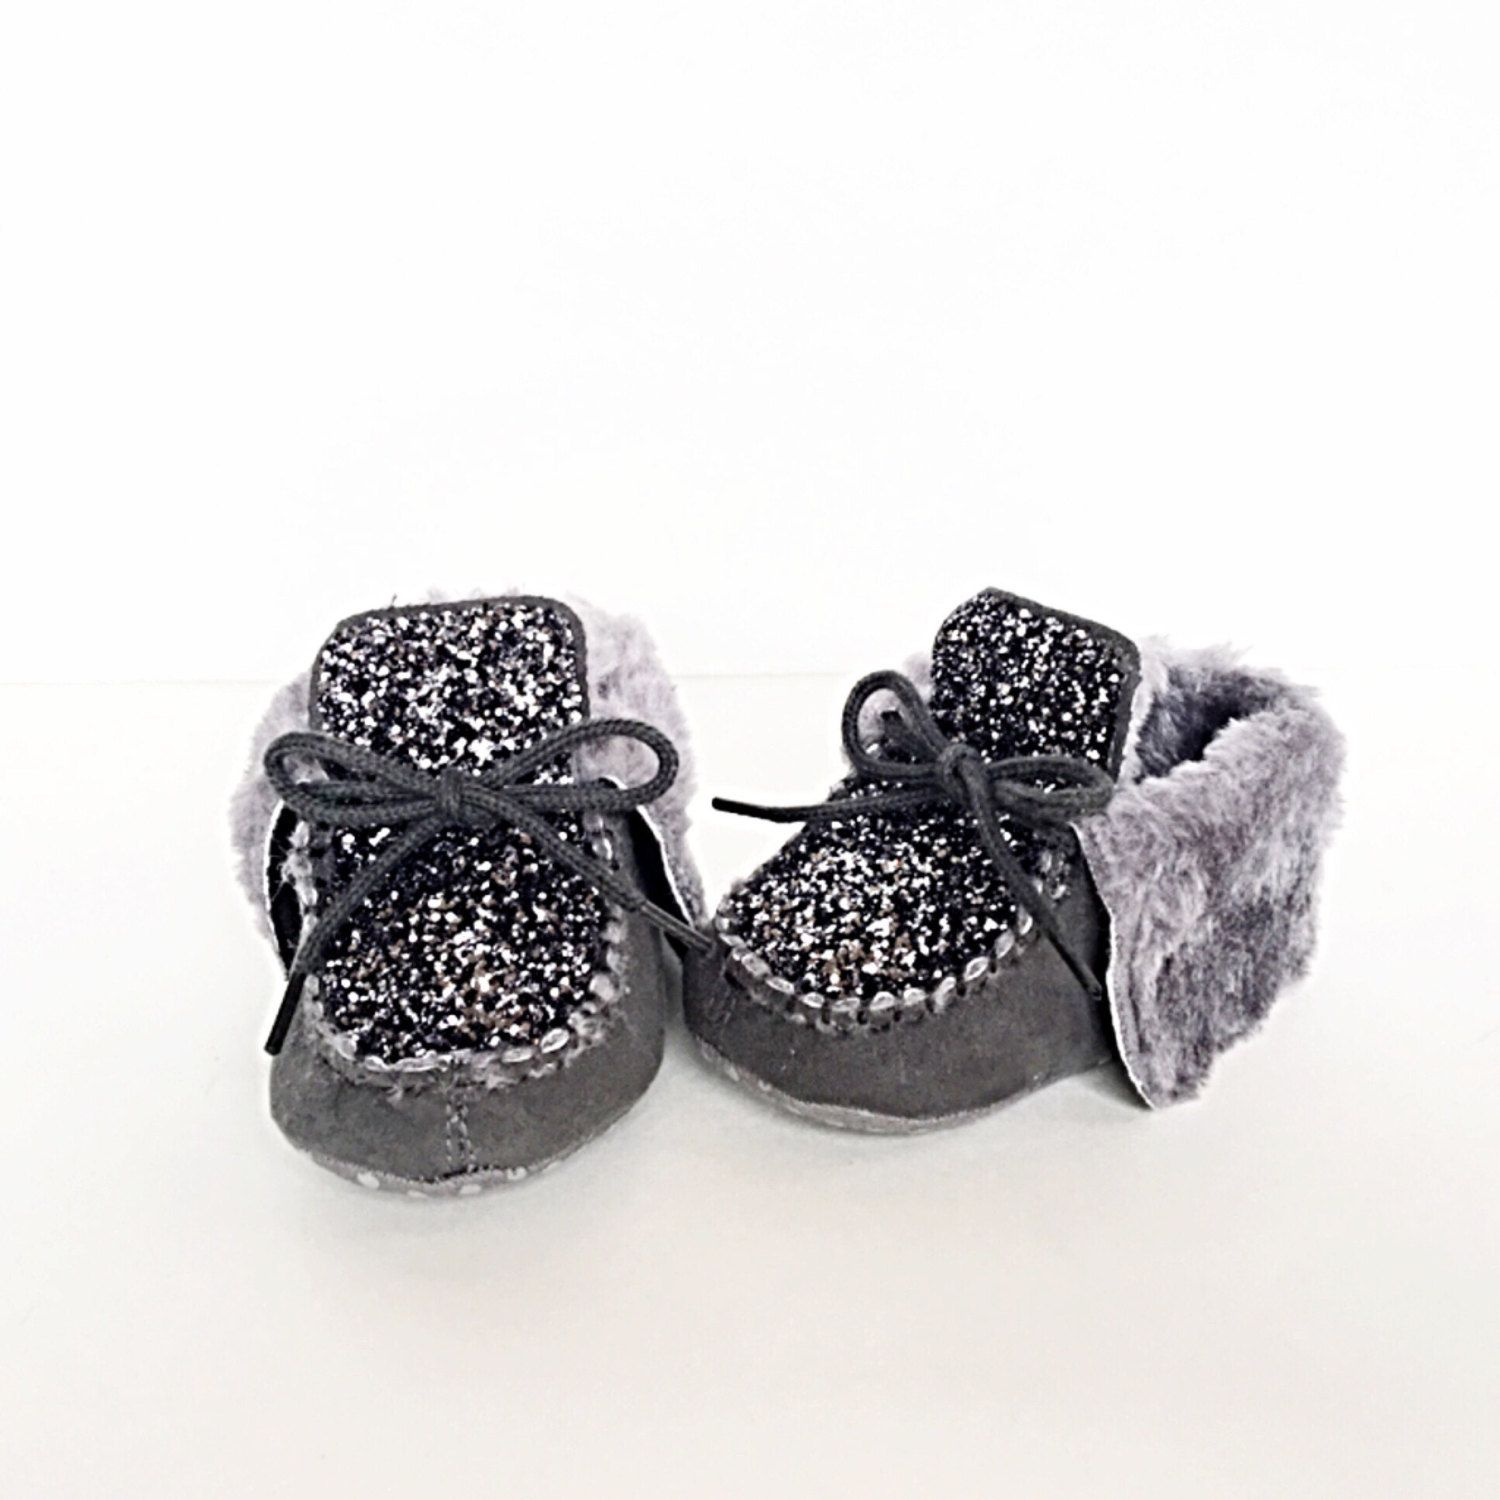 Baby Glitter Shoes Grey Gray Toddler Kids Boots Silver Charcoal